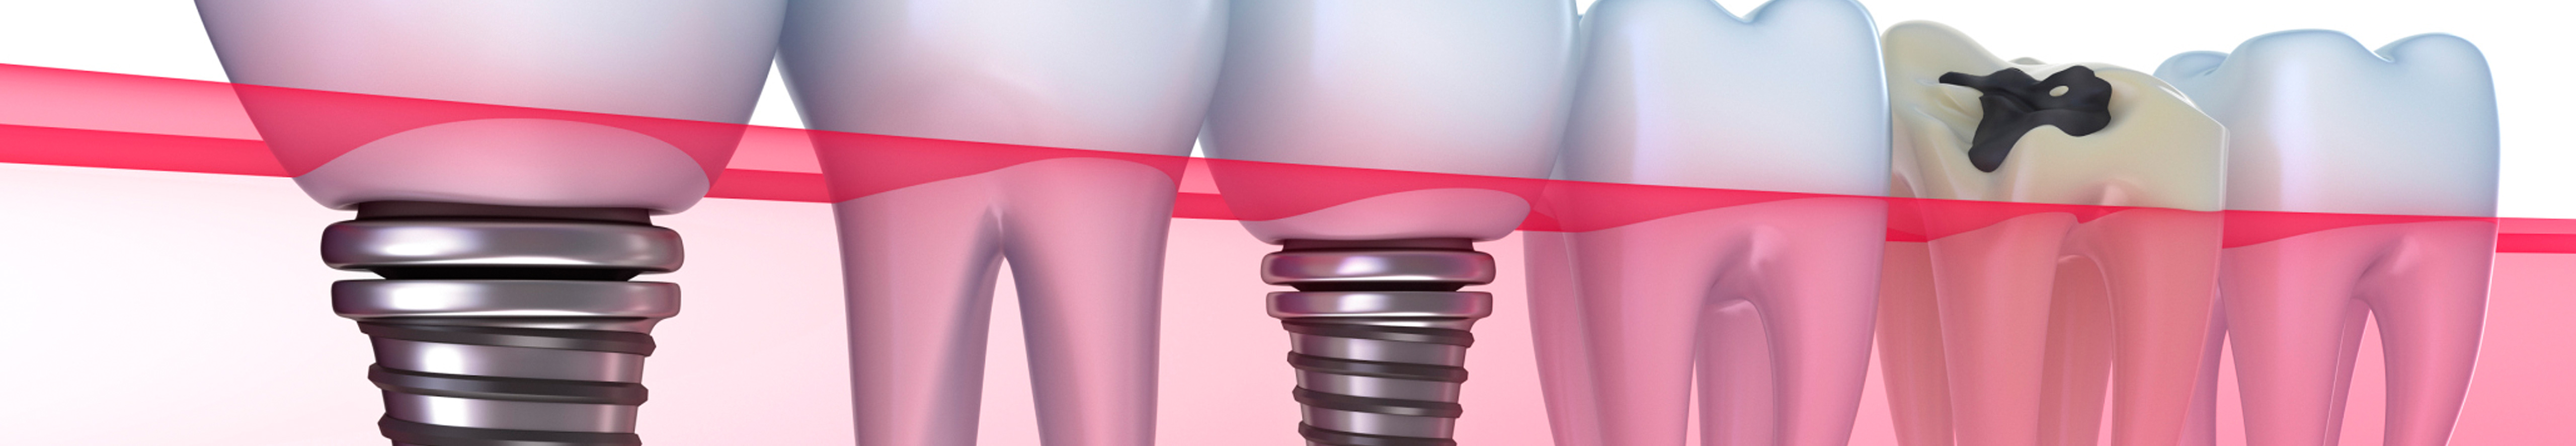 Dental Implants Treatments in Costa Rica